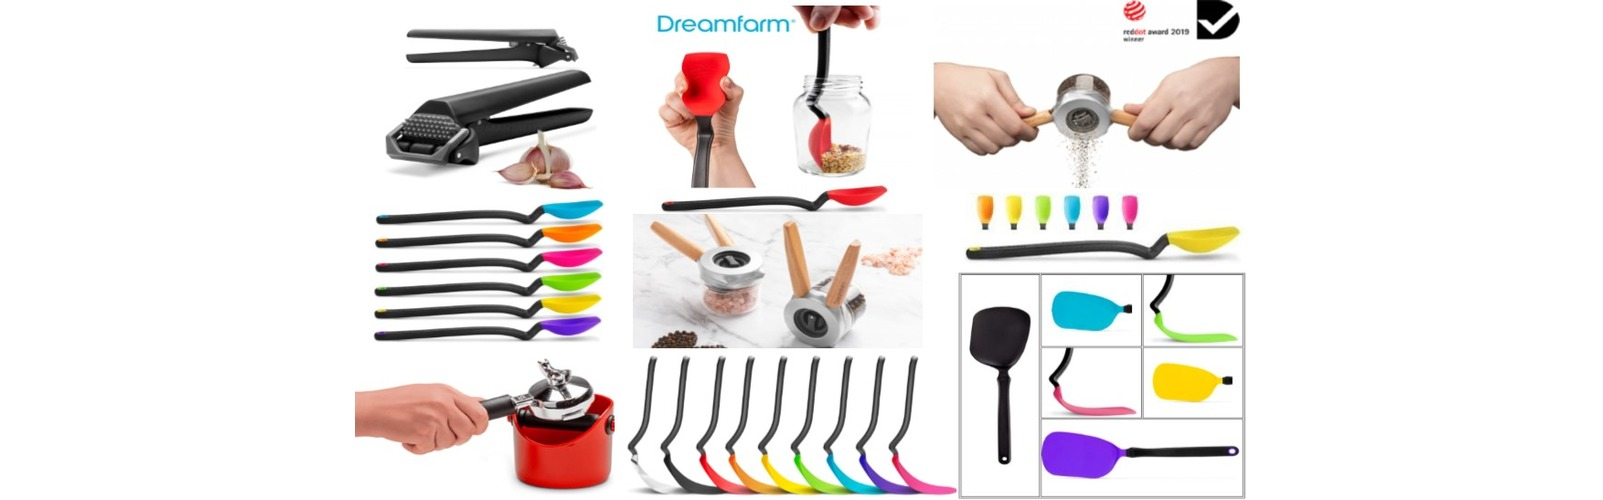 Dreamfarm - Prep Utensils - Day and Age